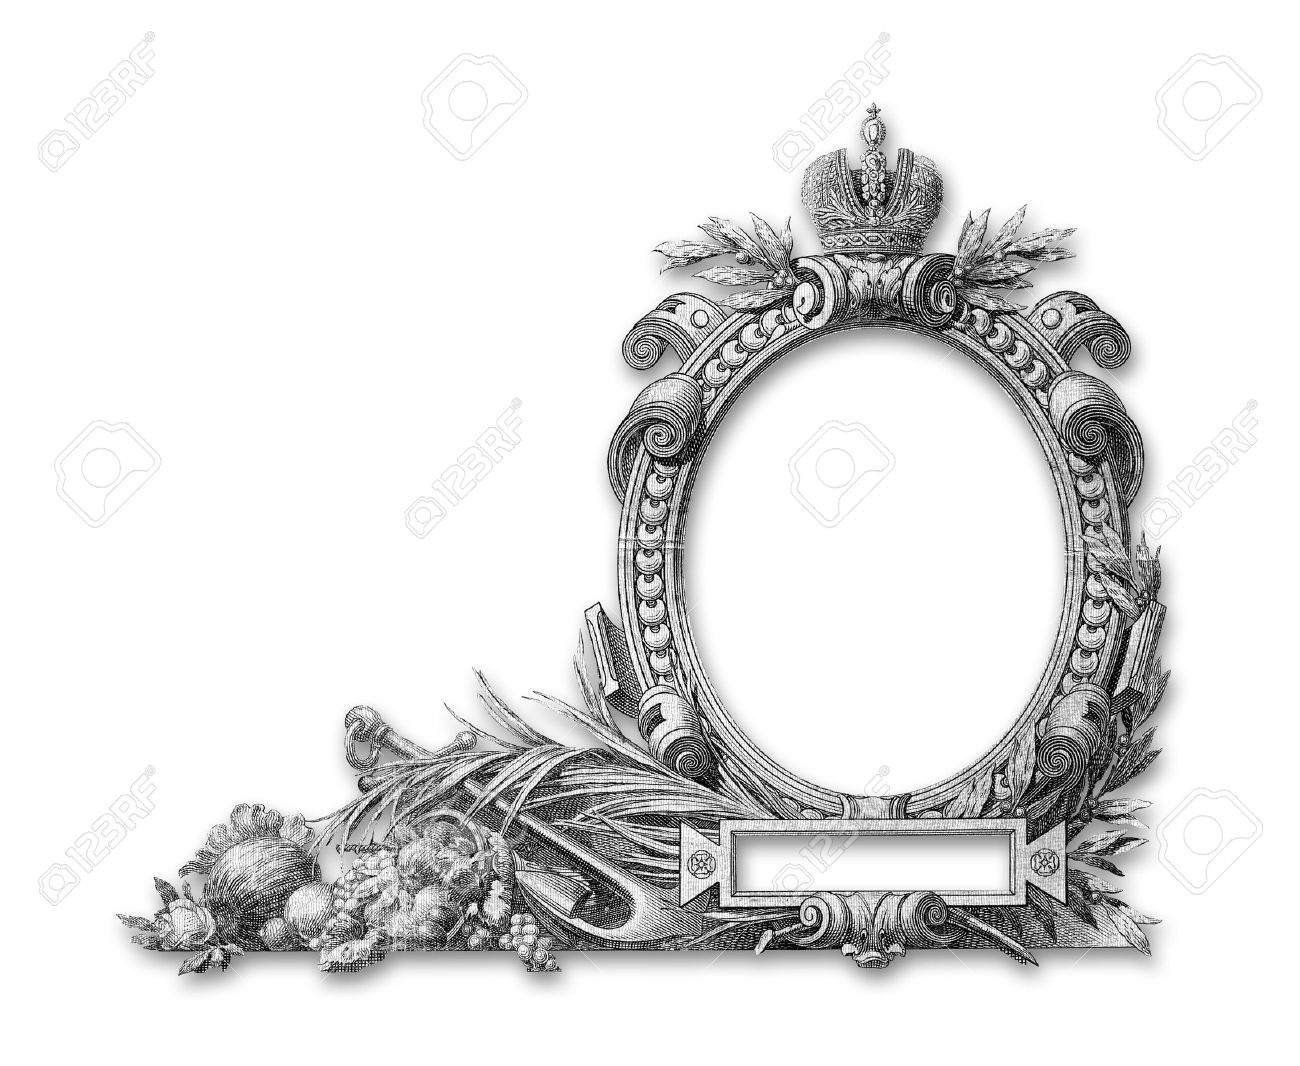 Old Victorian Frame On A White Background Stock Photo, Picture And ...